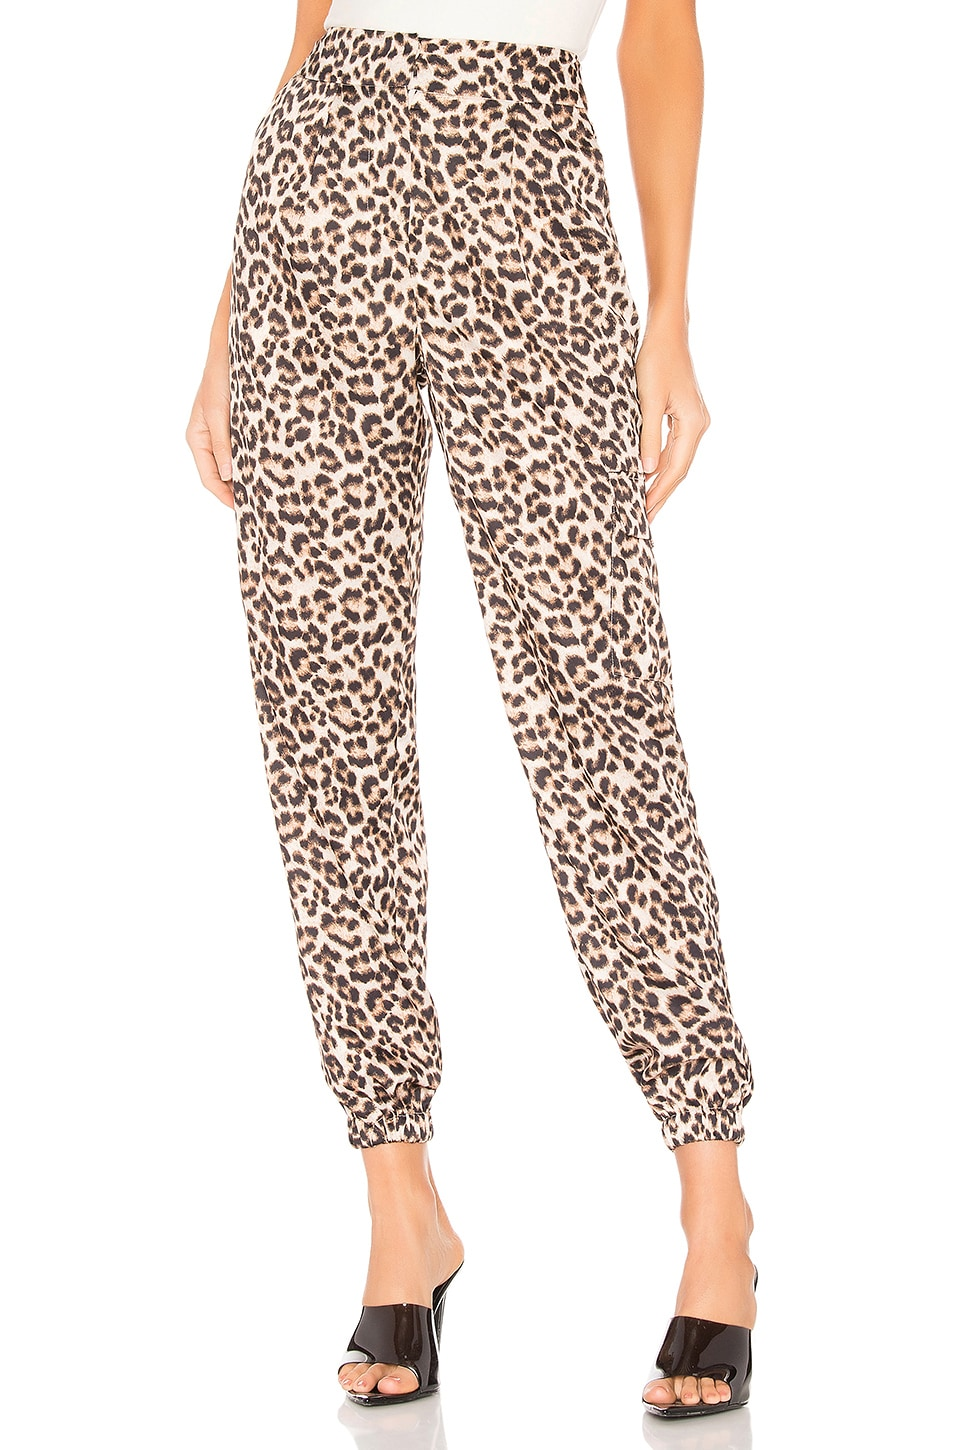 h:ours Elysa Pants in Leopard